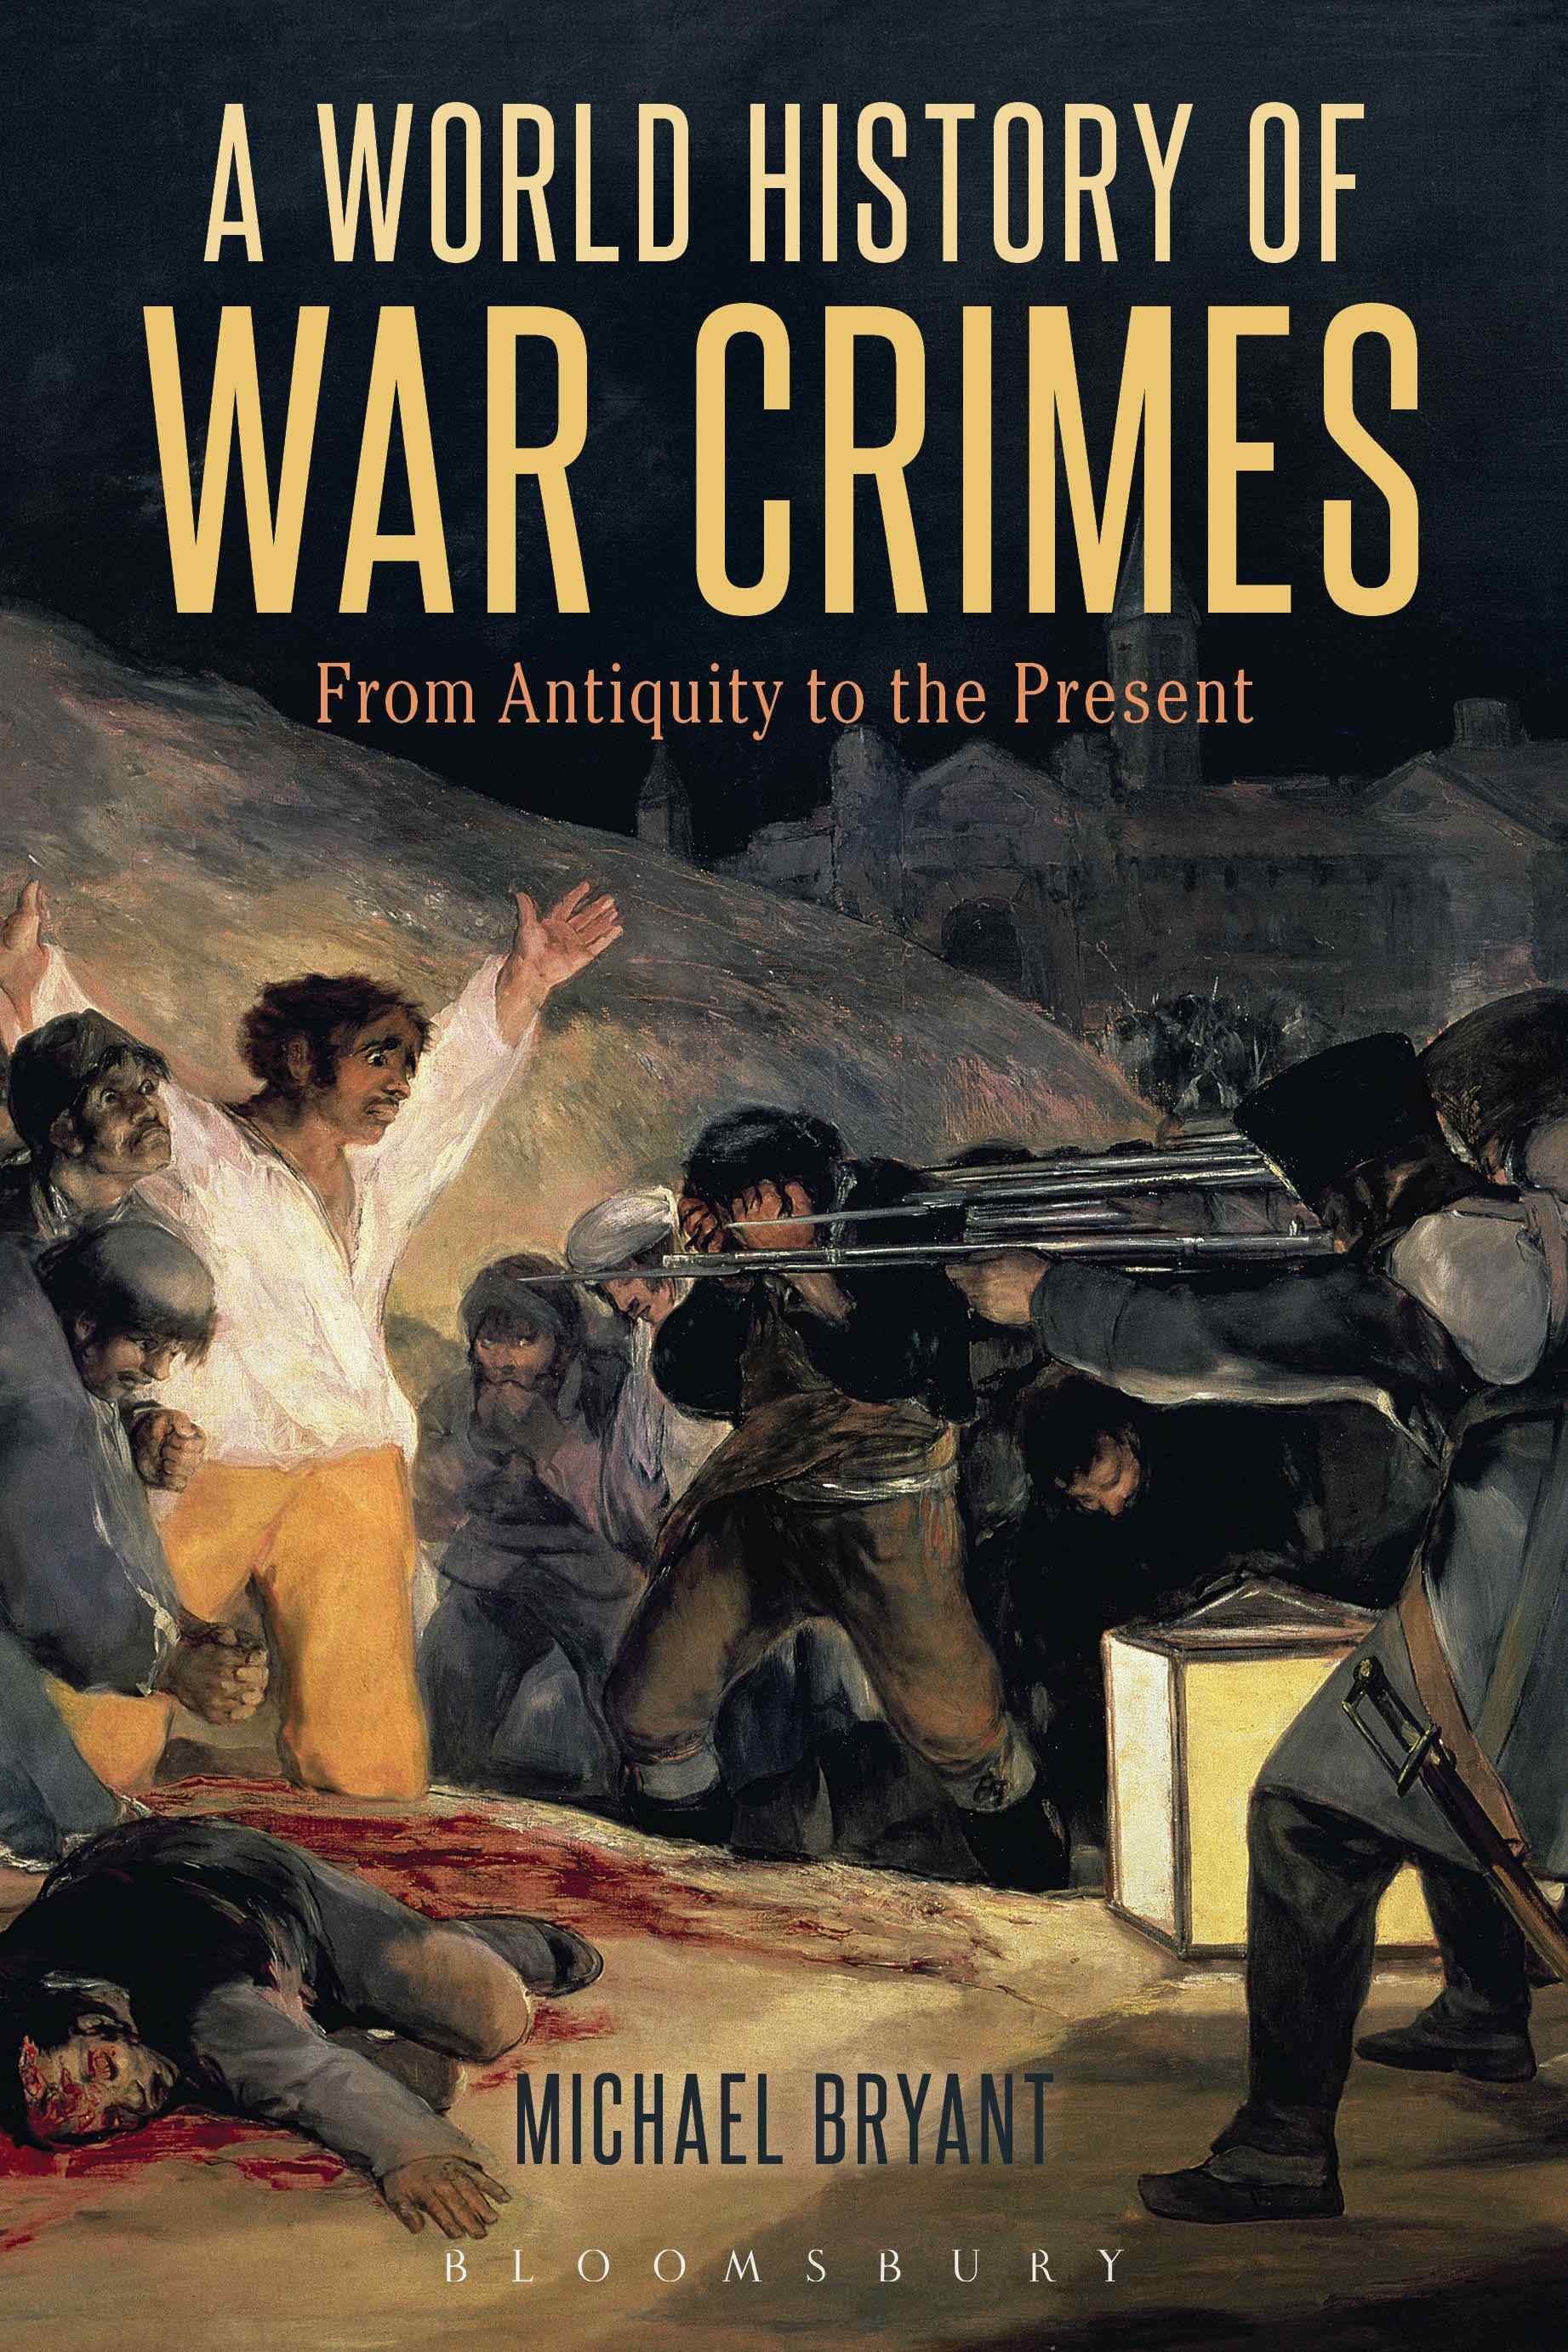 The cover of A World History of War Crimes.